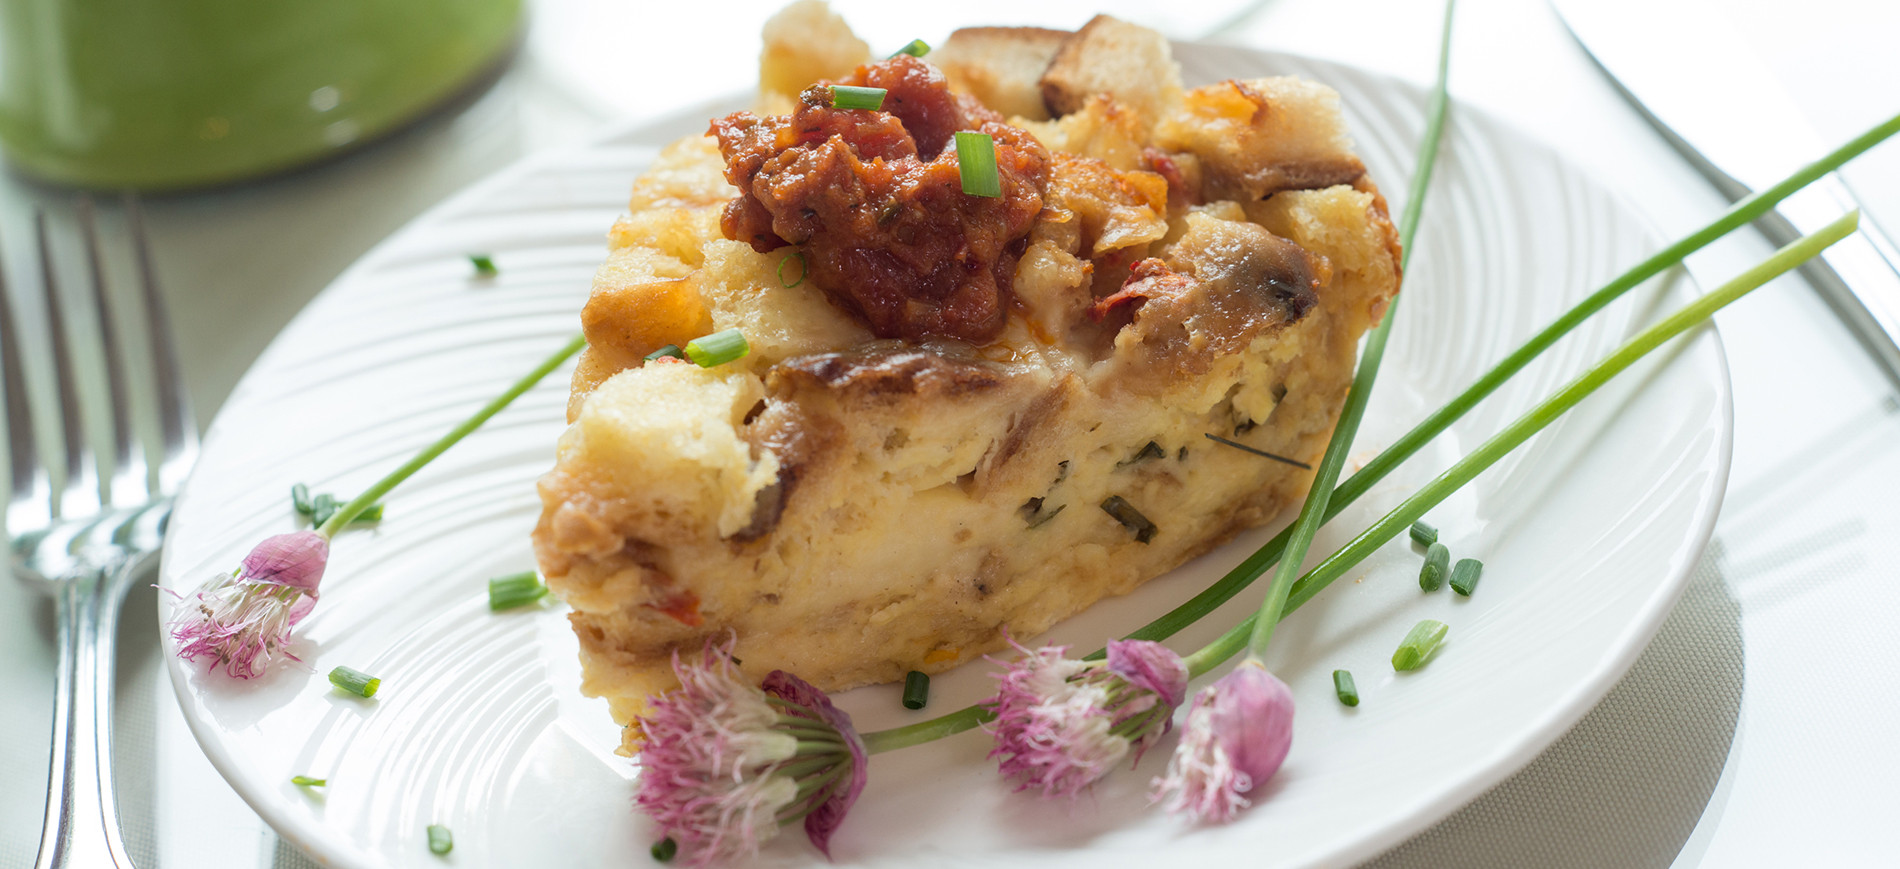 Chive and cheddar strata on white plate with chive blossom garnish